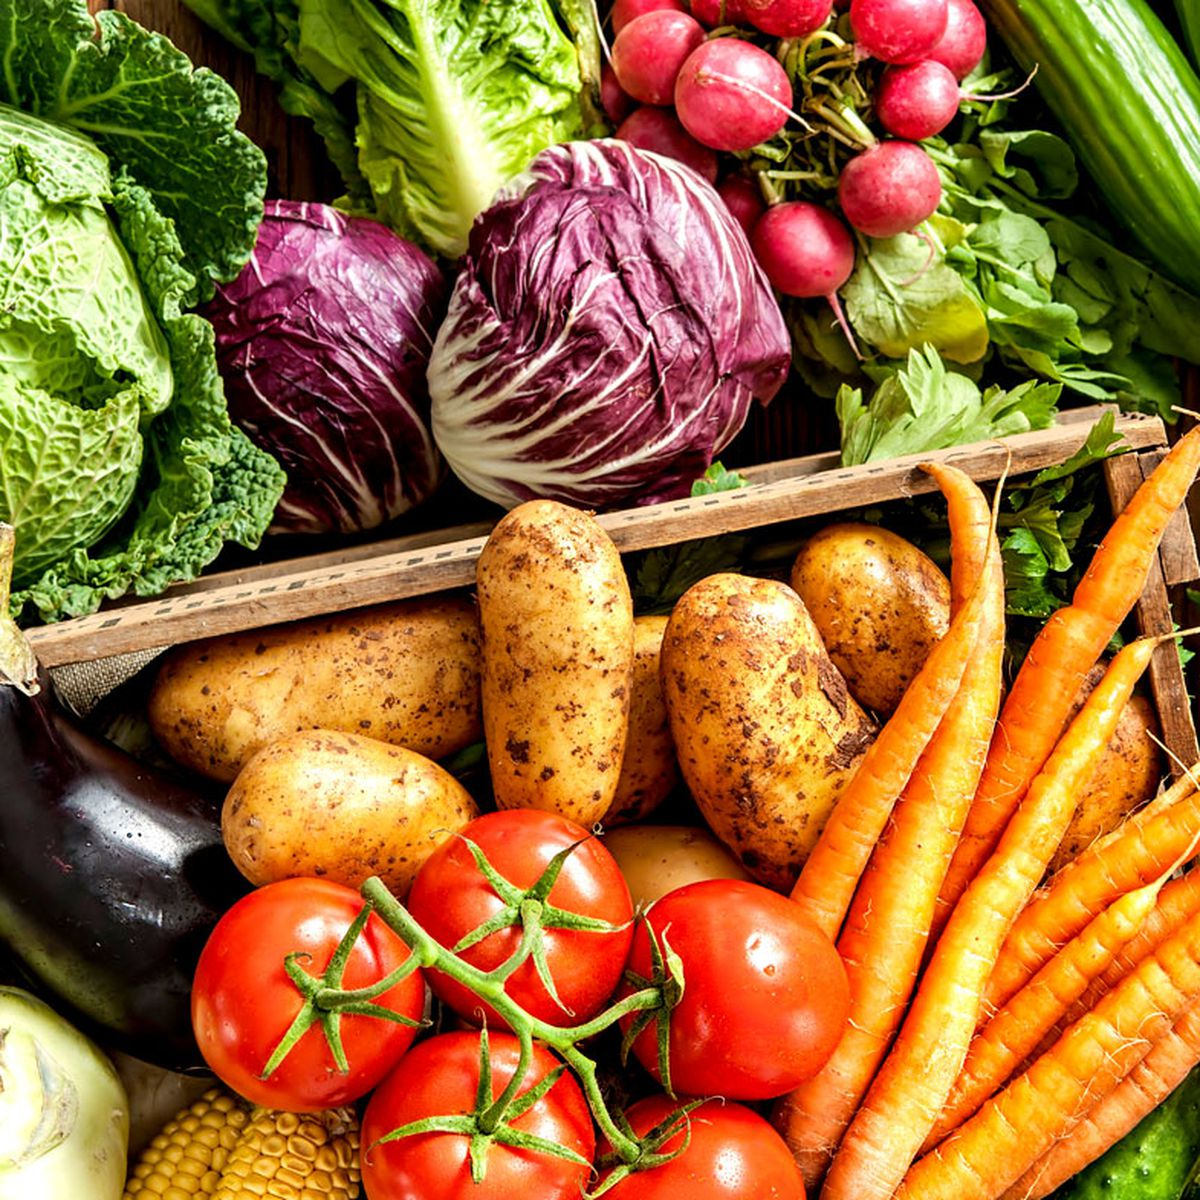 WHY YOU SHOULD EAT MORE VEGETABLES